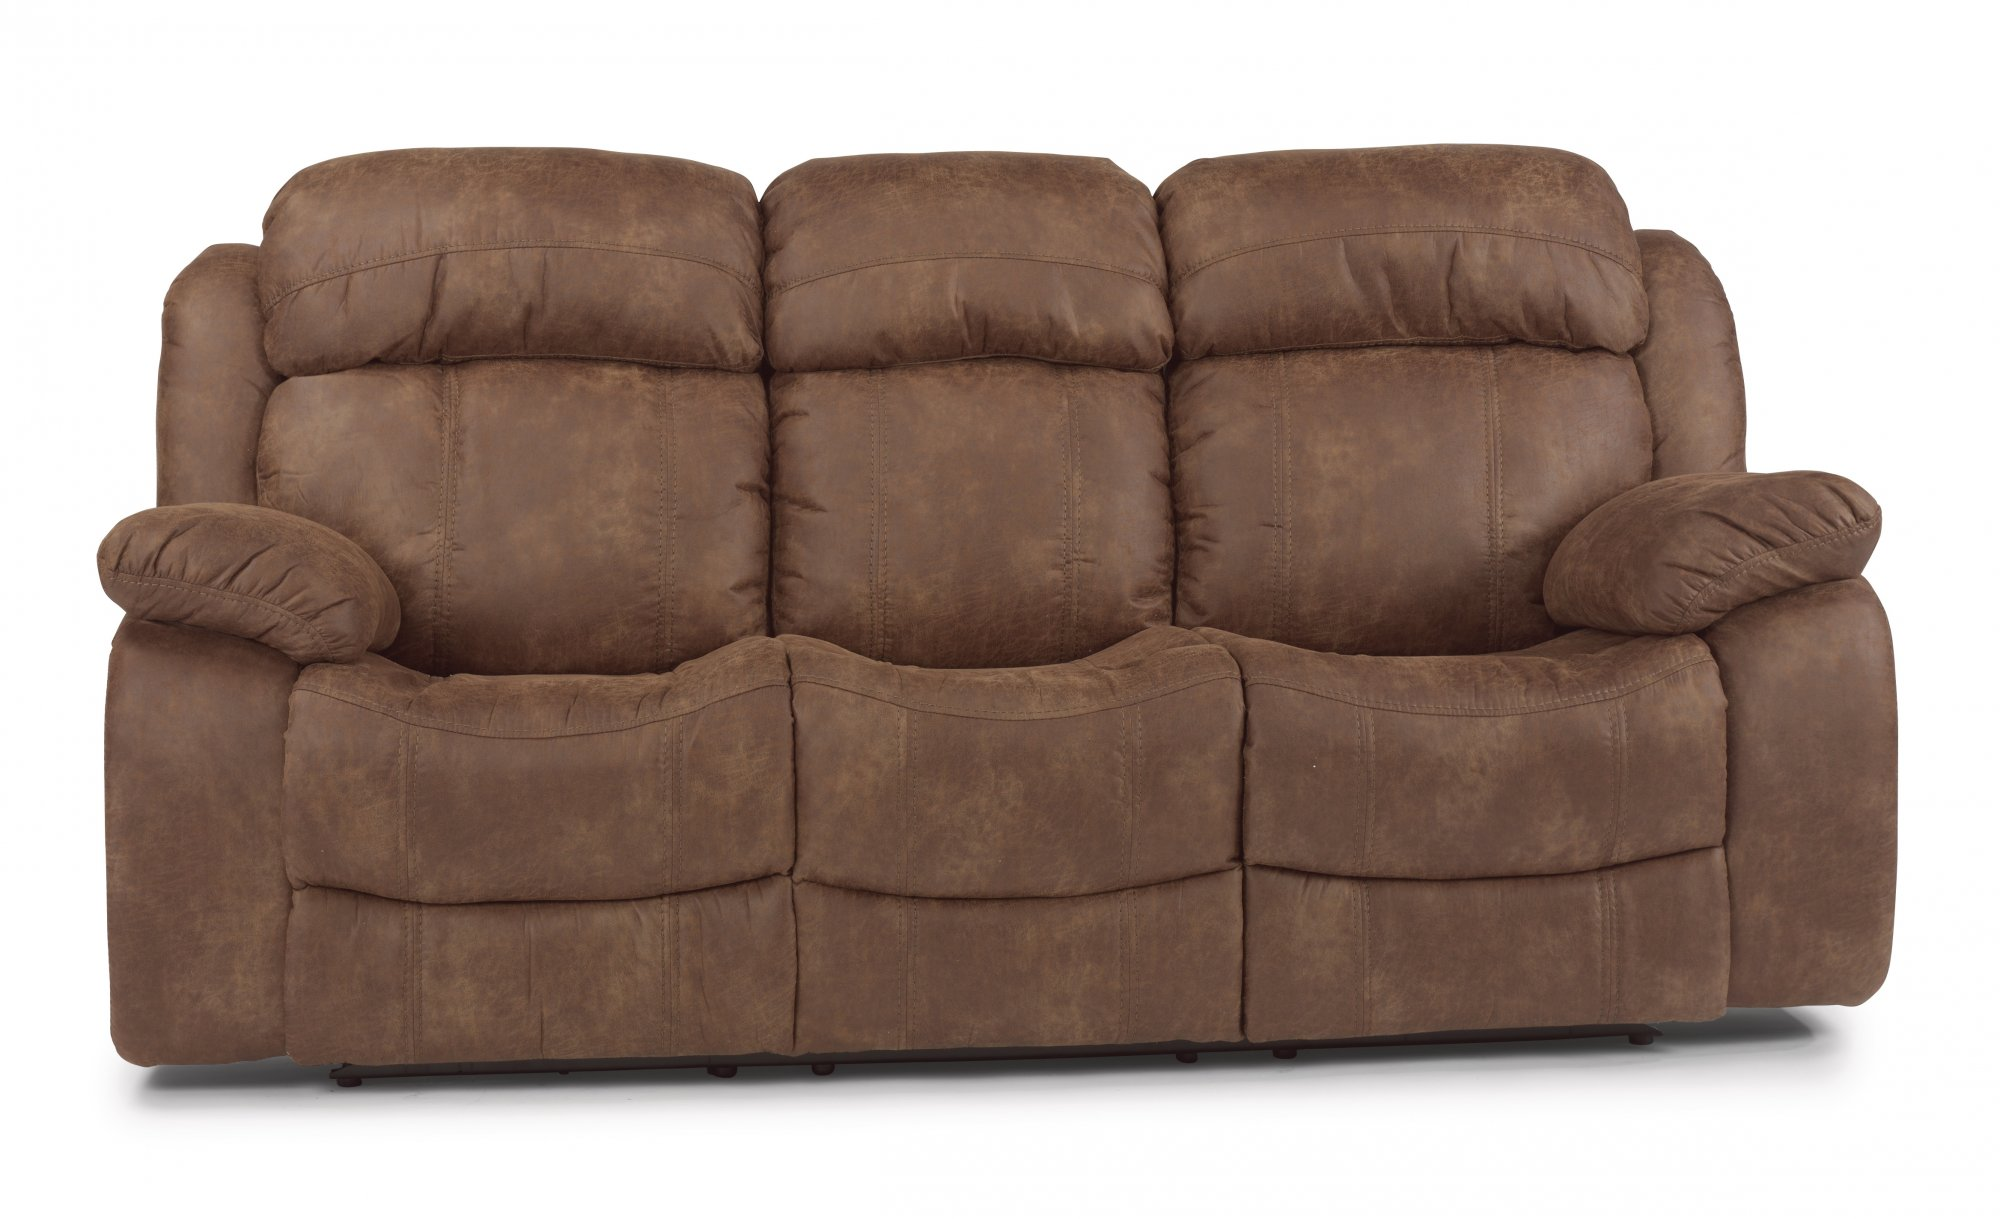 flexsteel double reclining sofa reviews readymade covers in dubai como fabric recliner share via email download a high resolution image